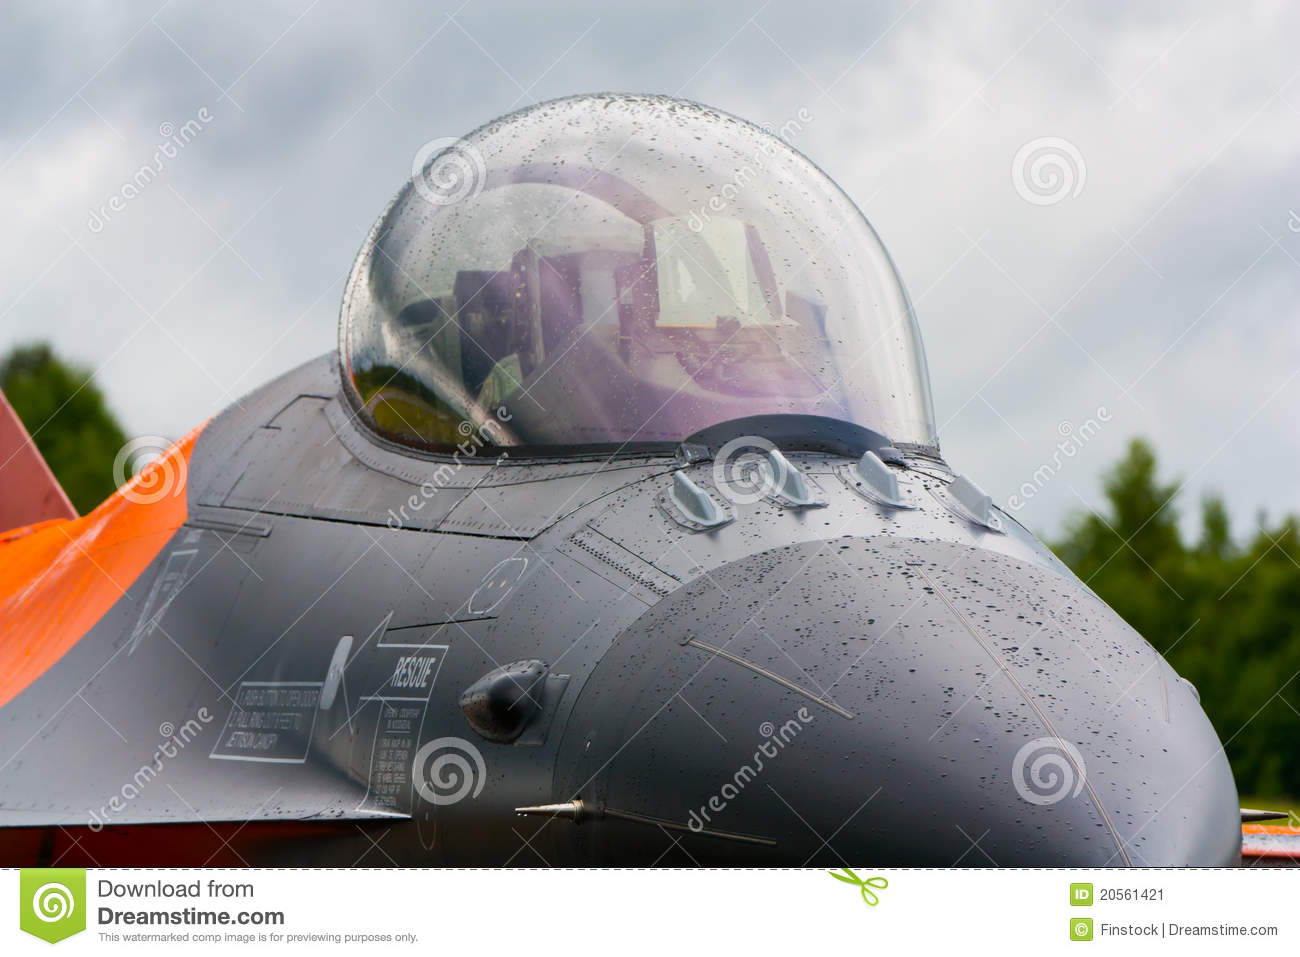 F-16 canopy & F-16 canopy stock image. Image of canopy fighting close - 20561421